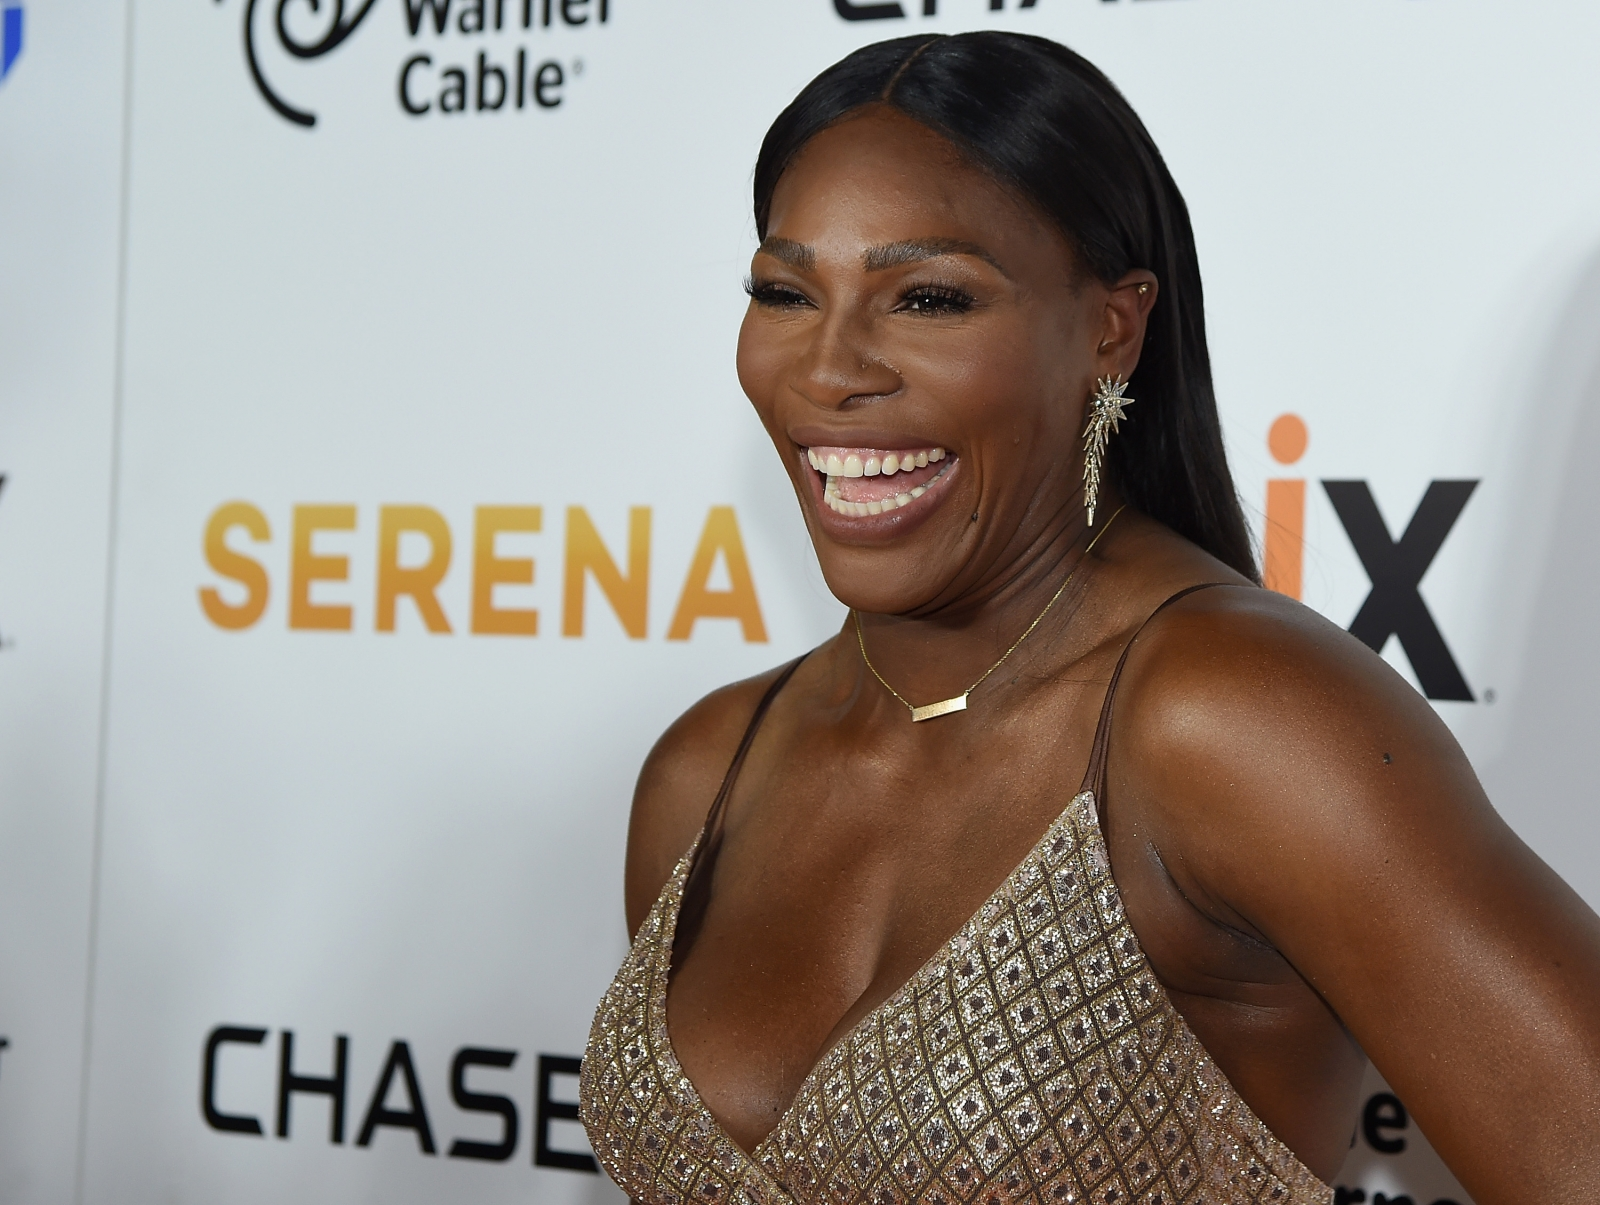 Williams: It's A... Gender Of Serena Williams' Baby Accidentally